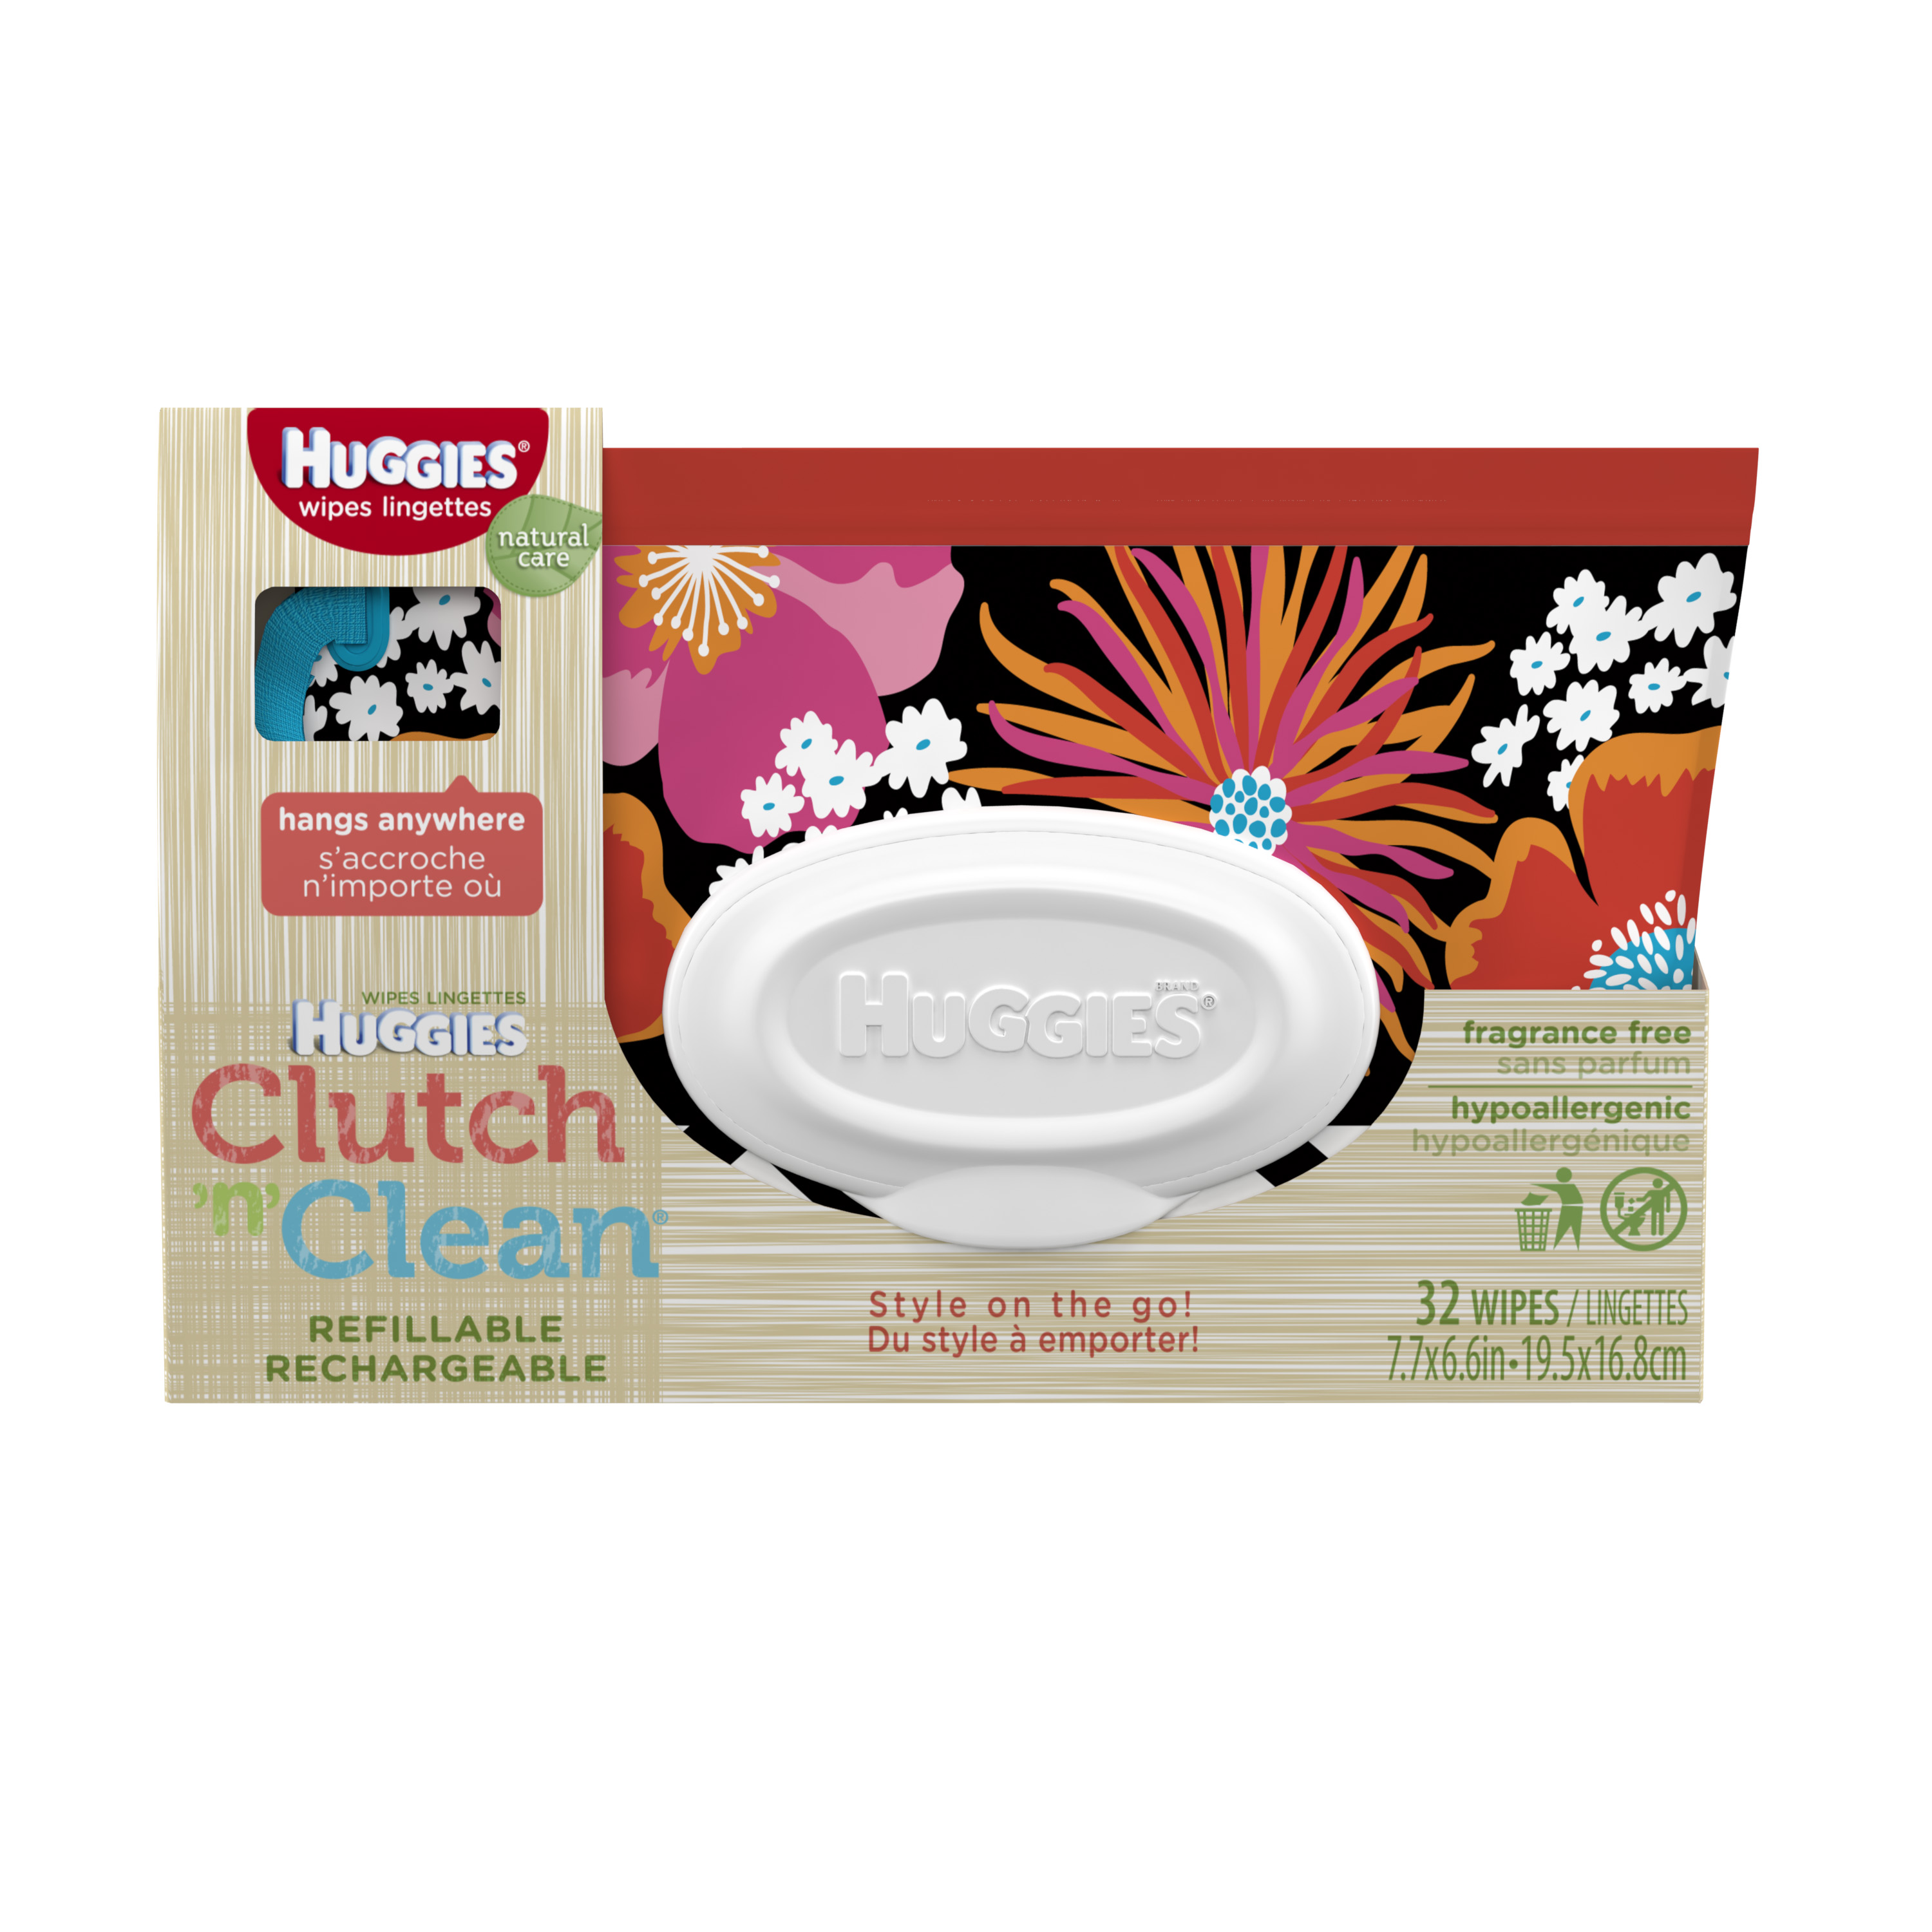 STYLE WILL VARY Huggies Wipe Clutch N Clean Refill 32 ct